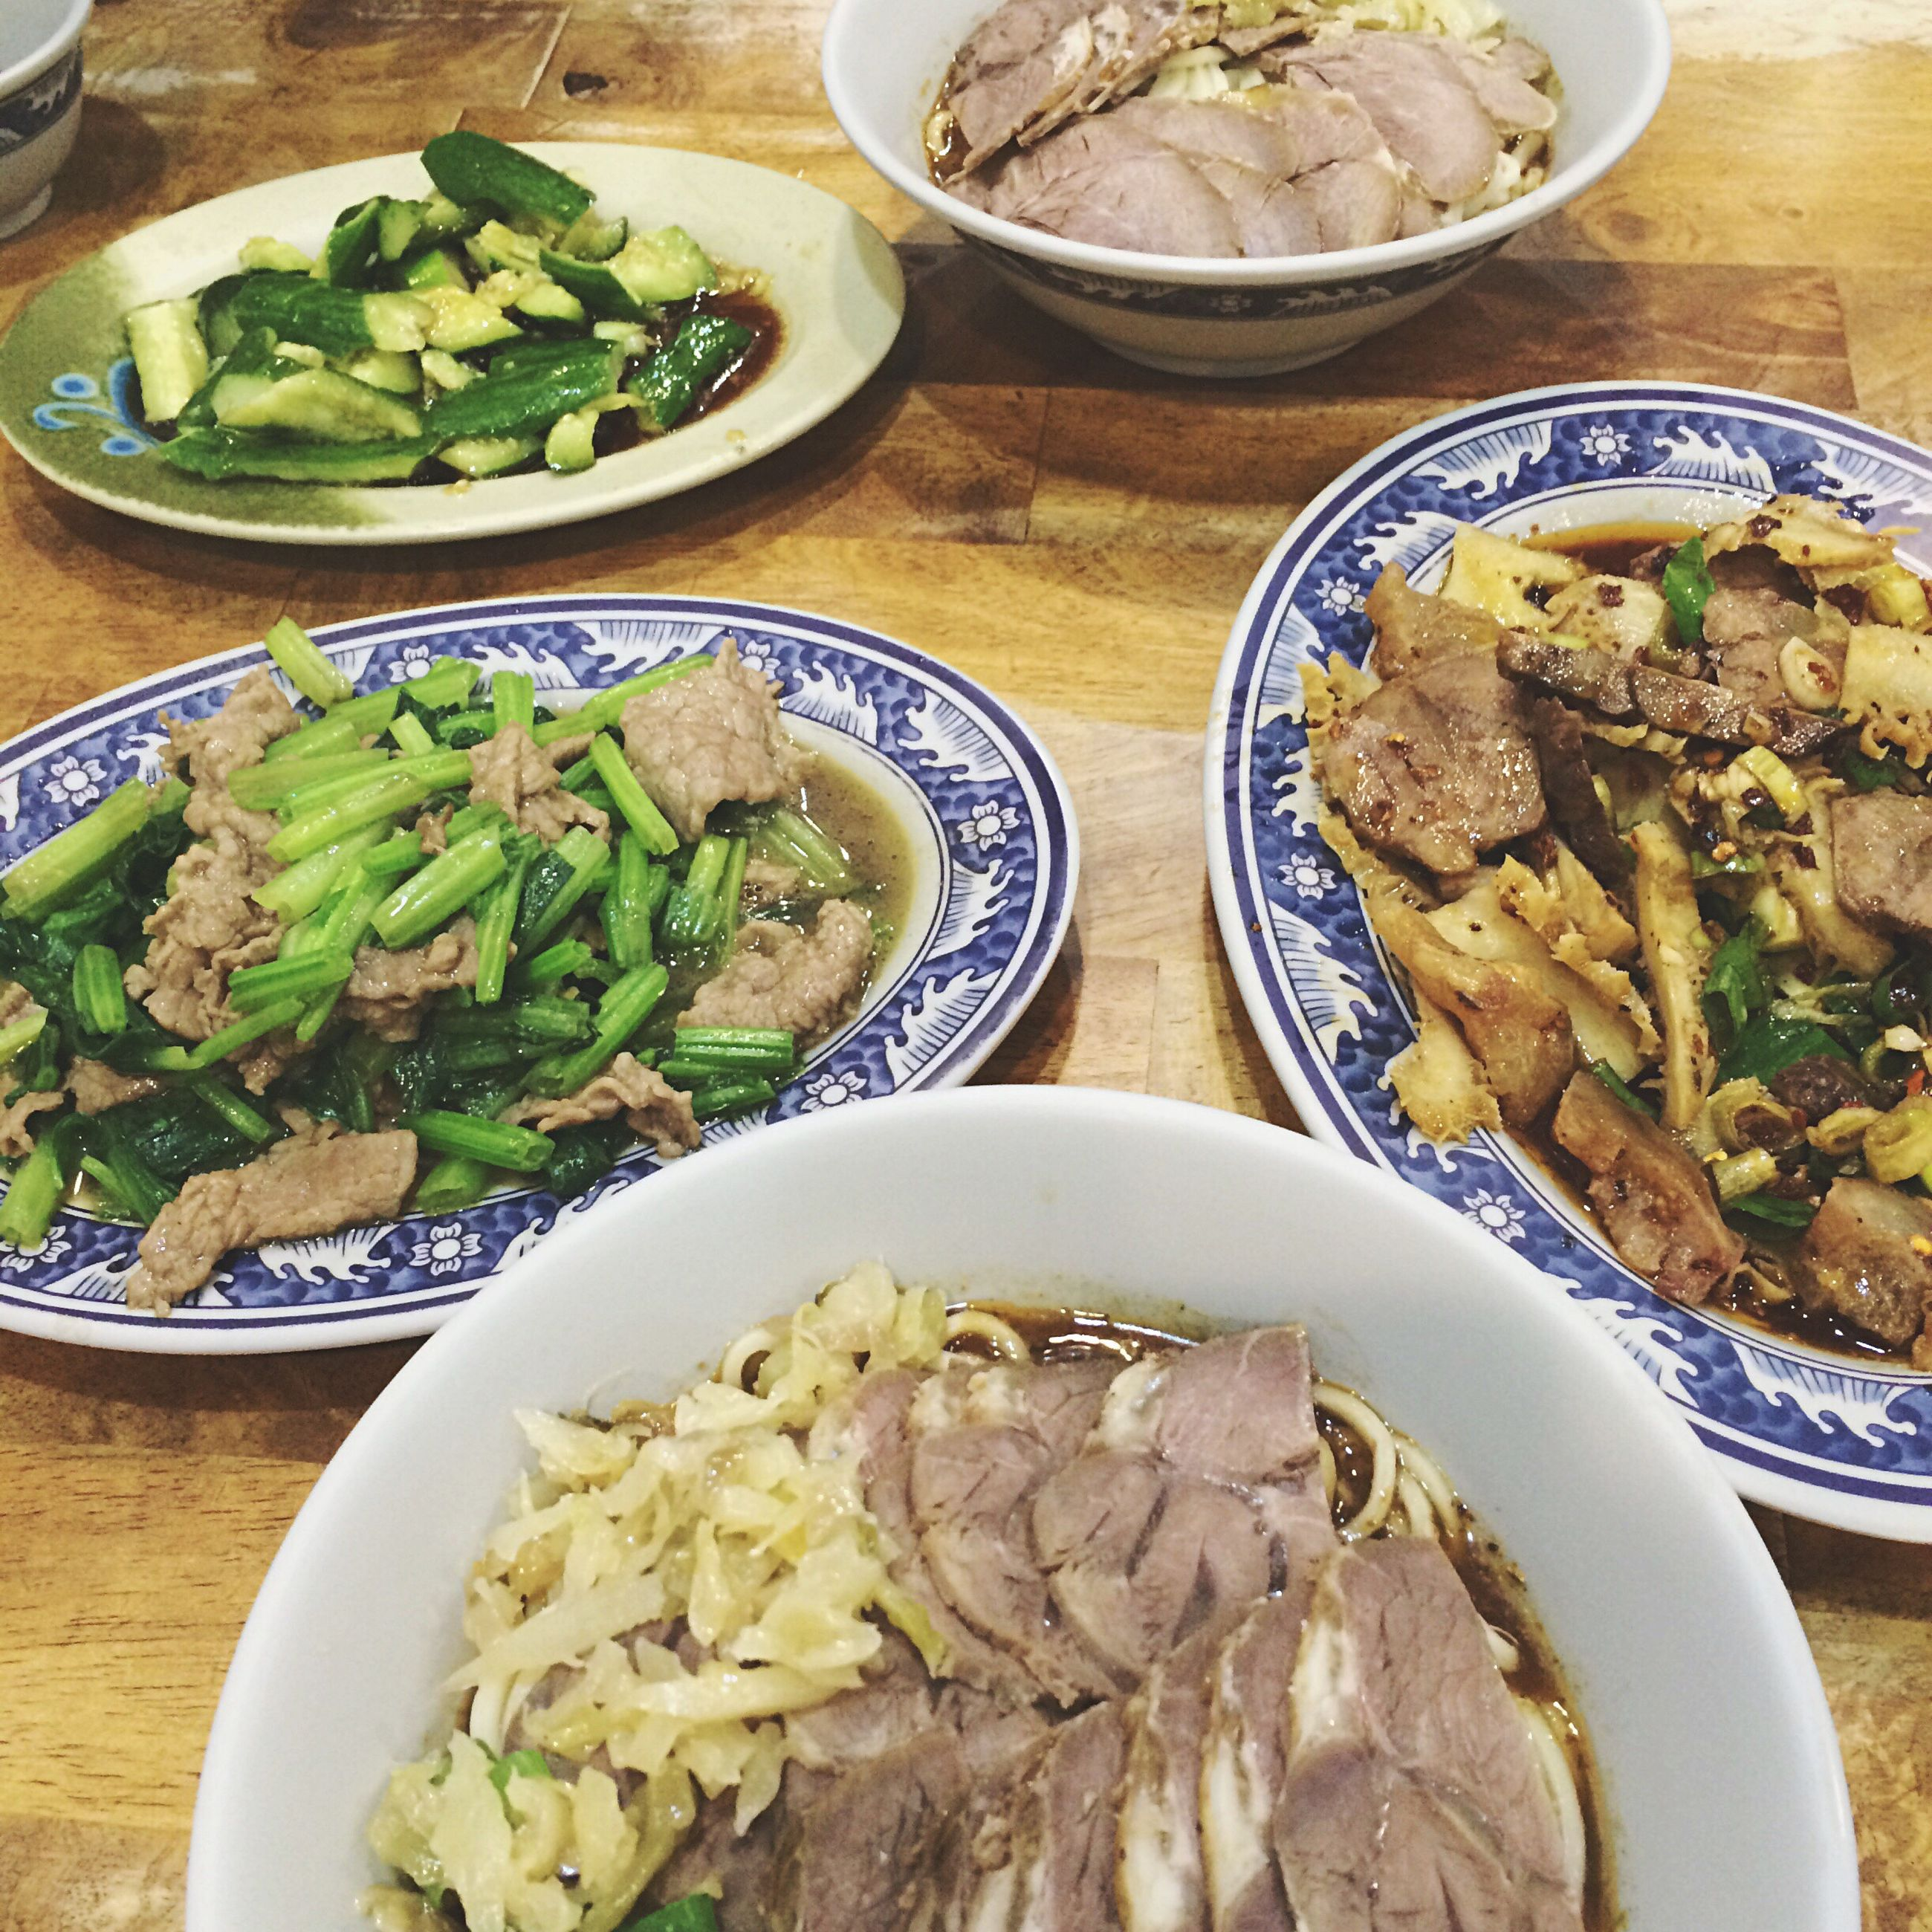 food and drink, food, freshness, indoors, healthy eating, ready-to-eat, plate, bowl, table, still life, meal, serving size, high angle view, vegetable, salad, served, meat, noodles, seafood, close-up